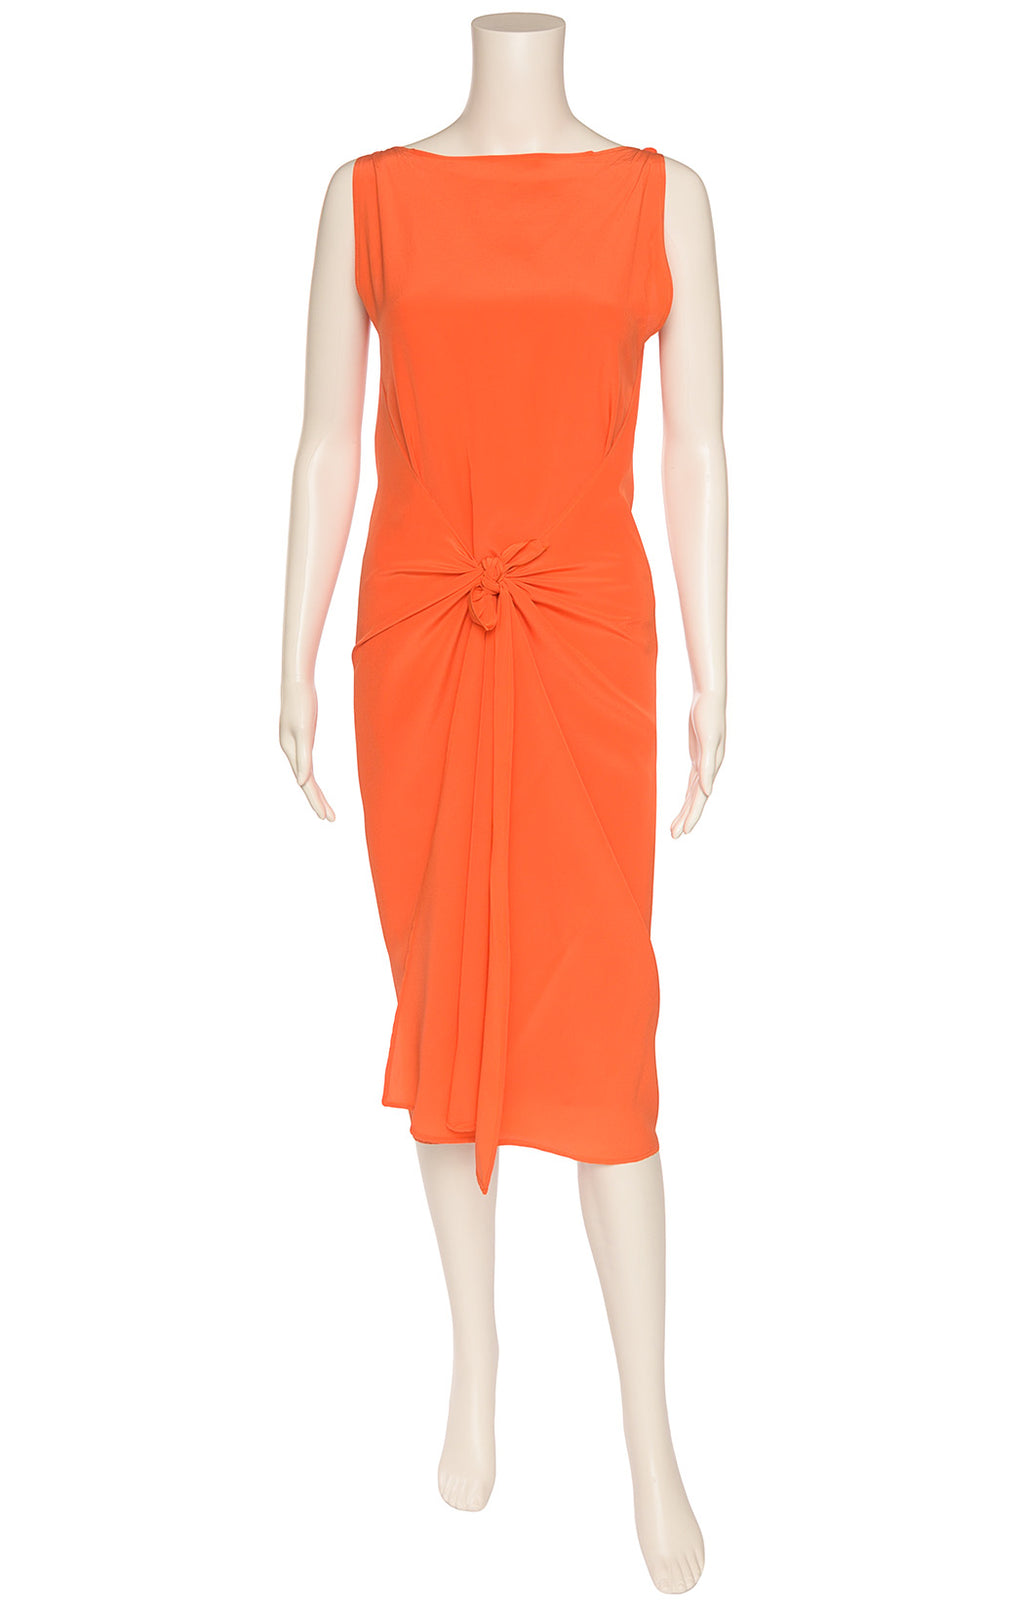 Front view of STEPHAN JANSON  Dress Size: IT 42 (comparable to US 4-6)